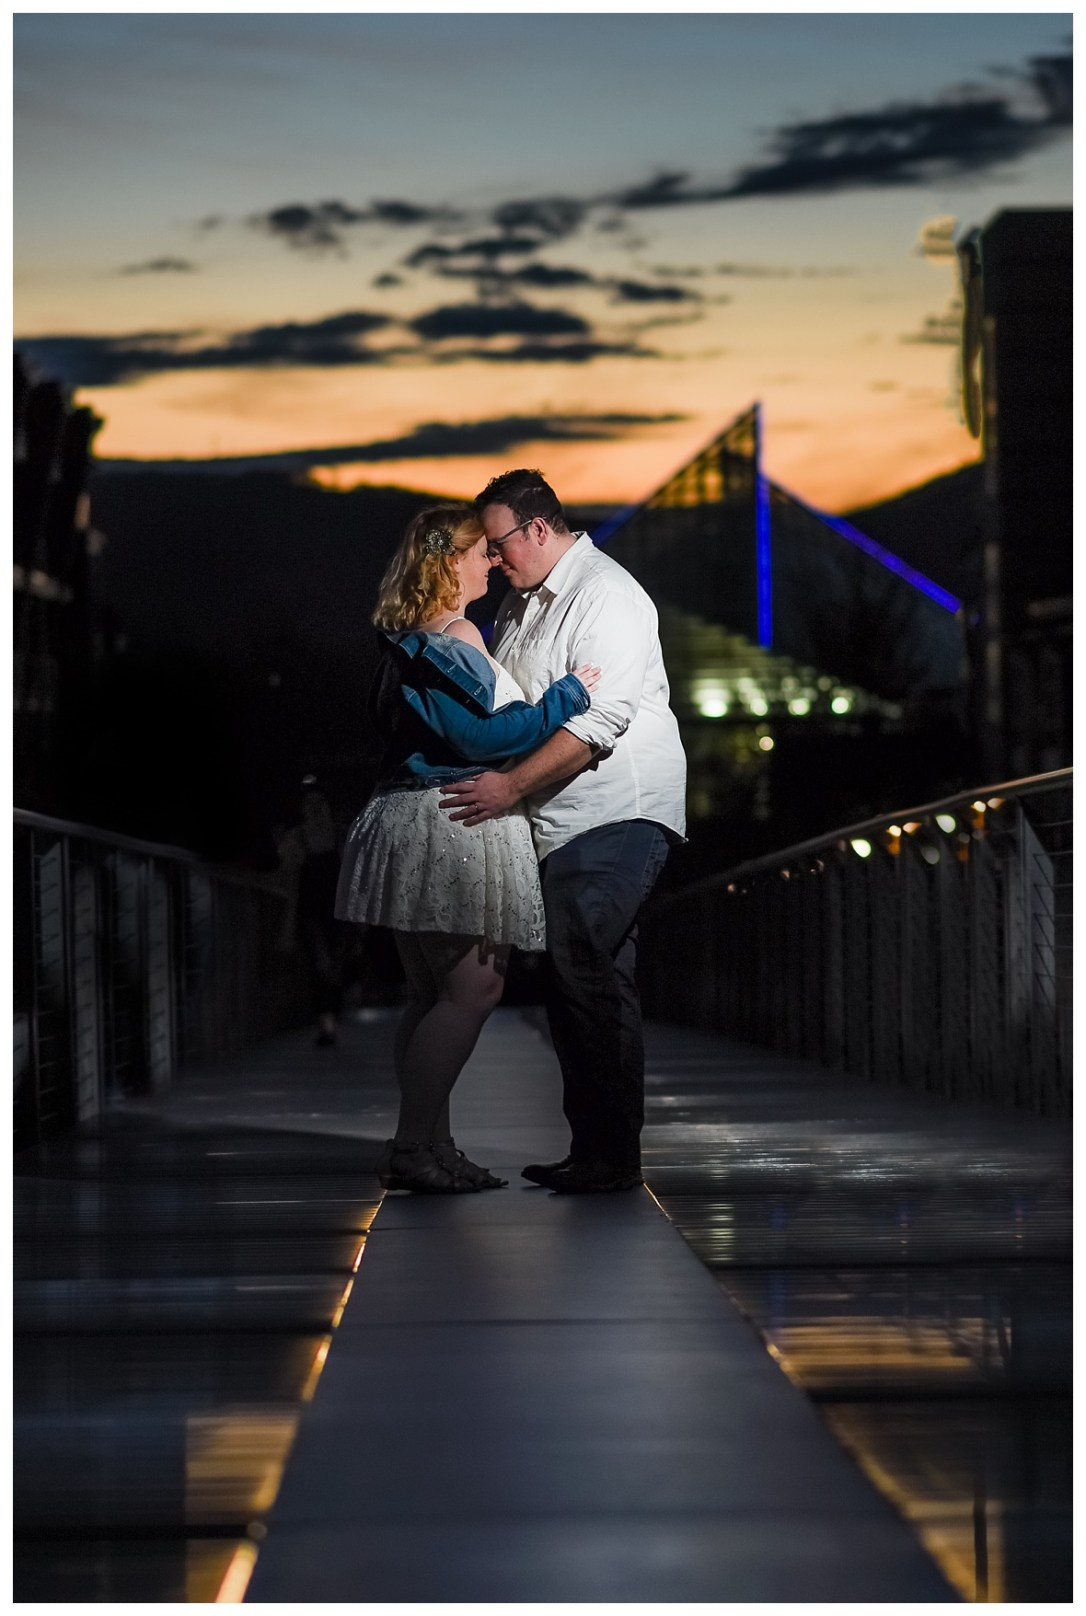 nightime engagement photos